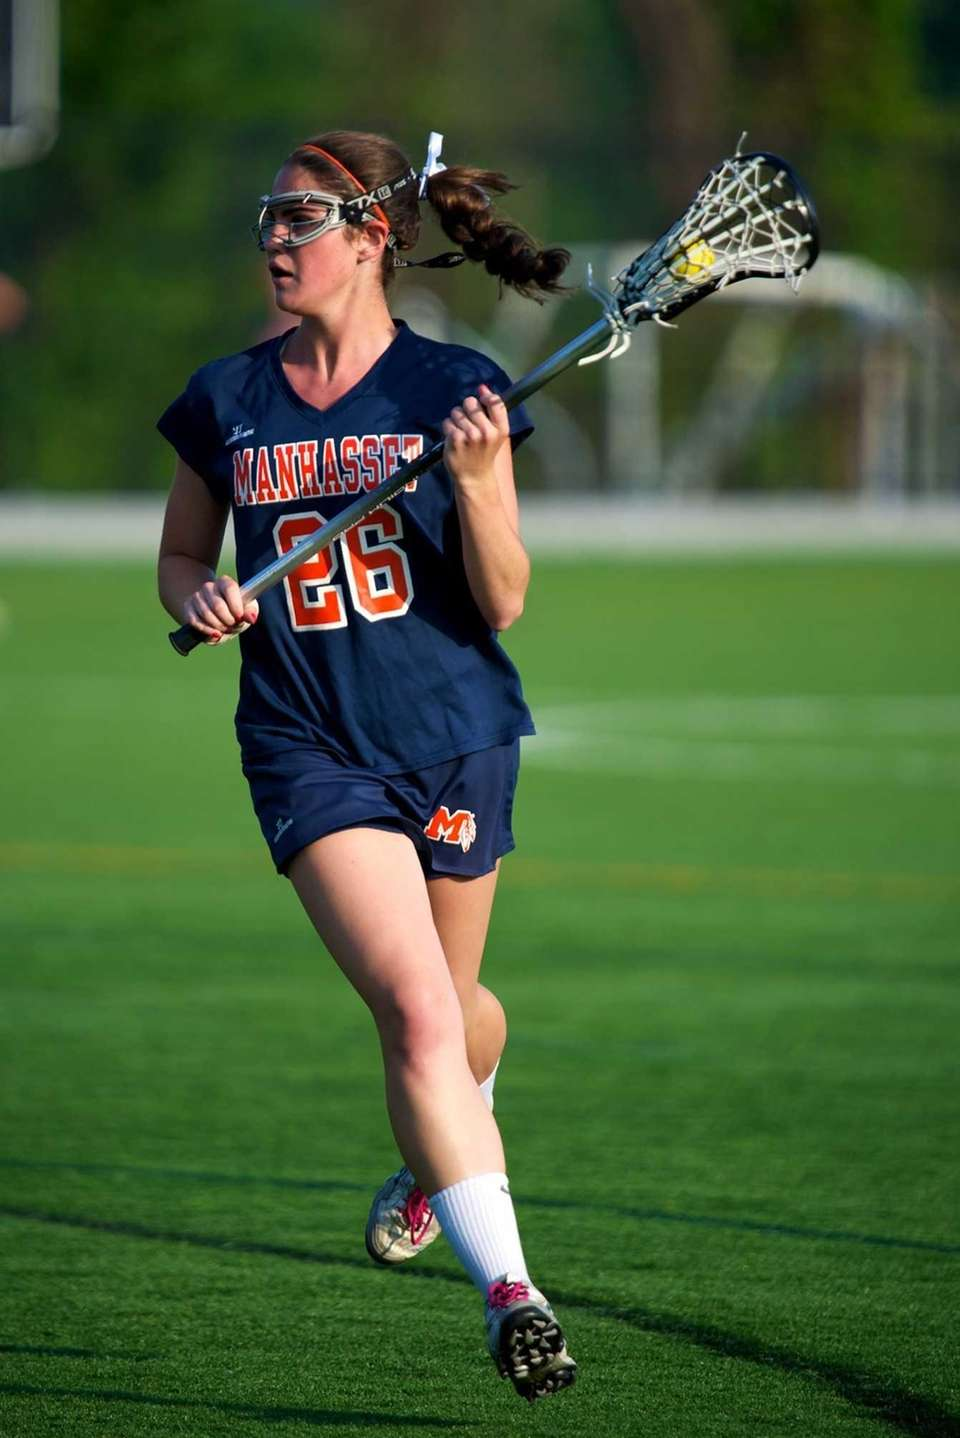 Manhasset midfielder Kellen D'Alleva carries the ball into